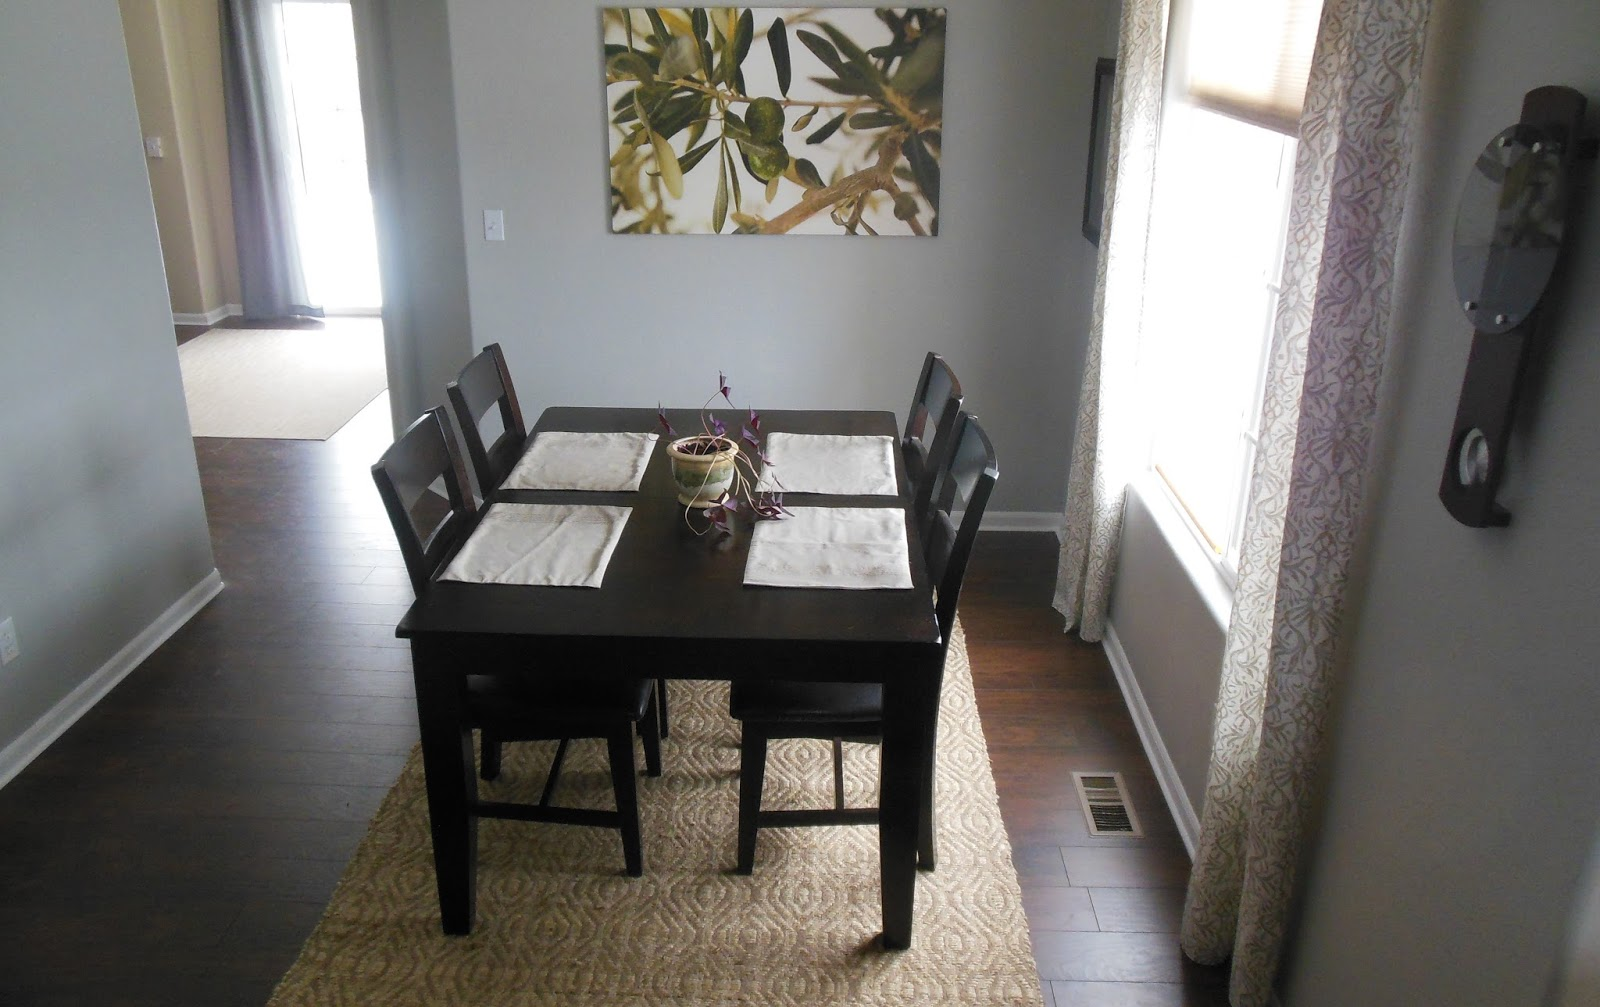 ... From One Half Of The House To The Other, We Opted To Get This 5x7 Rug  To Define The Space Of The Dining Room, And It Hasnu0027t Been An Issue At All.